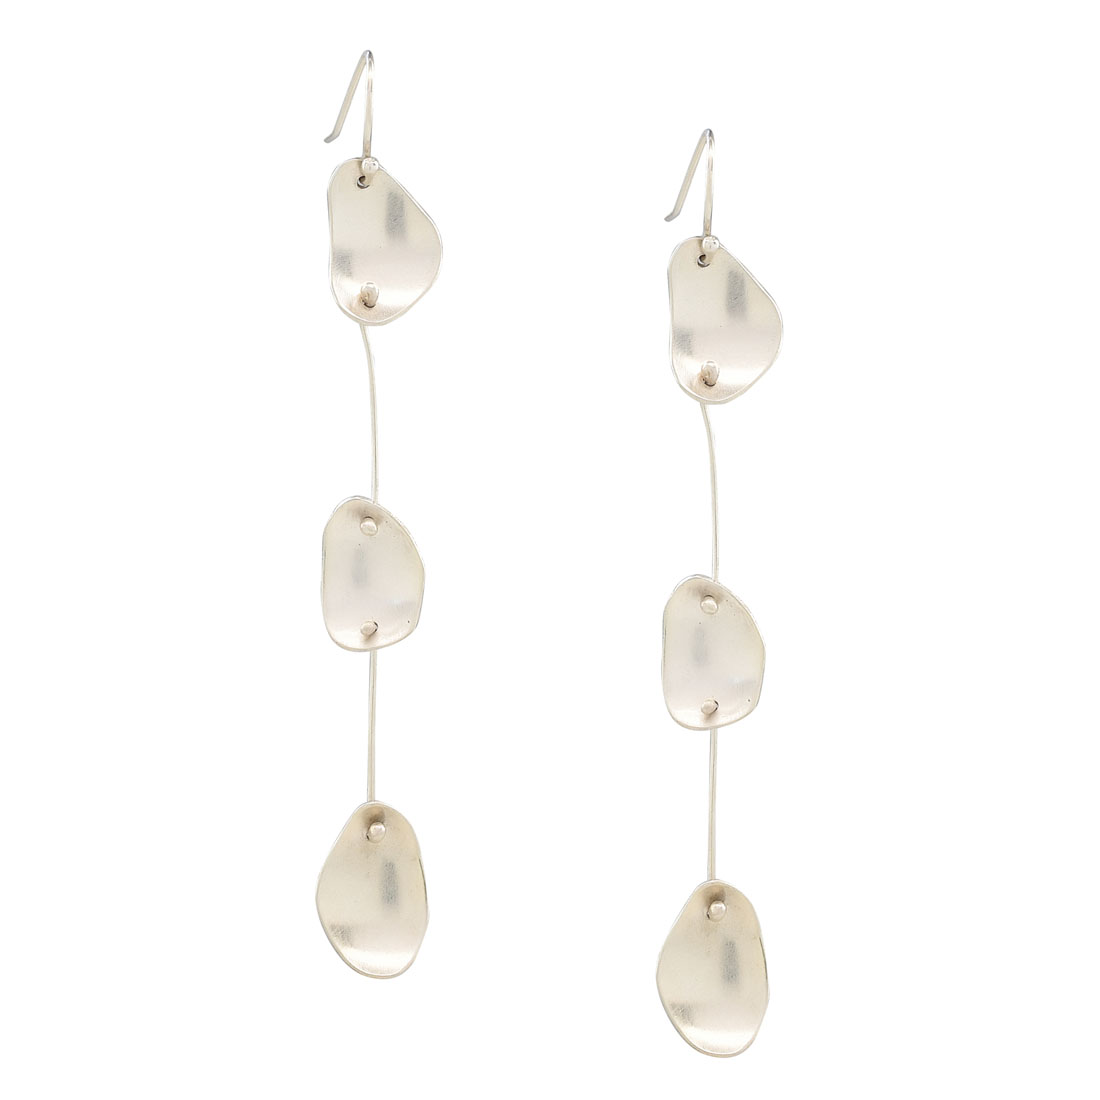 Shelon Bennett - Silver pebbles earrings